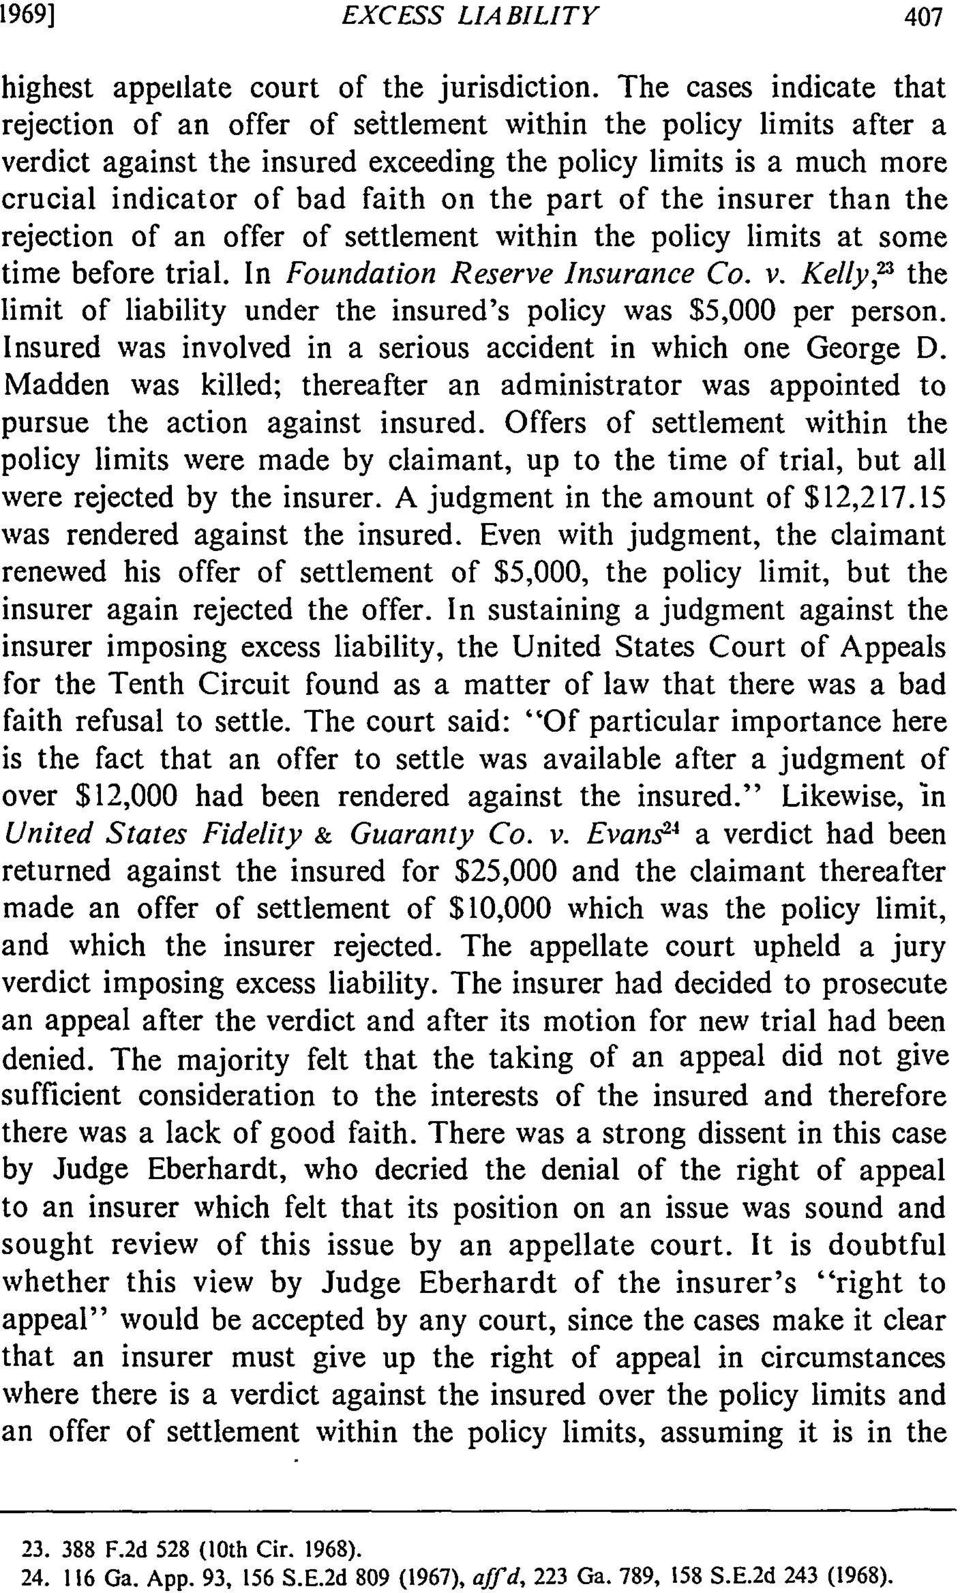 the part of the insurer than the rejection of an offer of settlement within the policy limits at some time before trial. In Foundation Reserve Insurance Co. v.